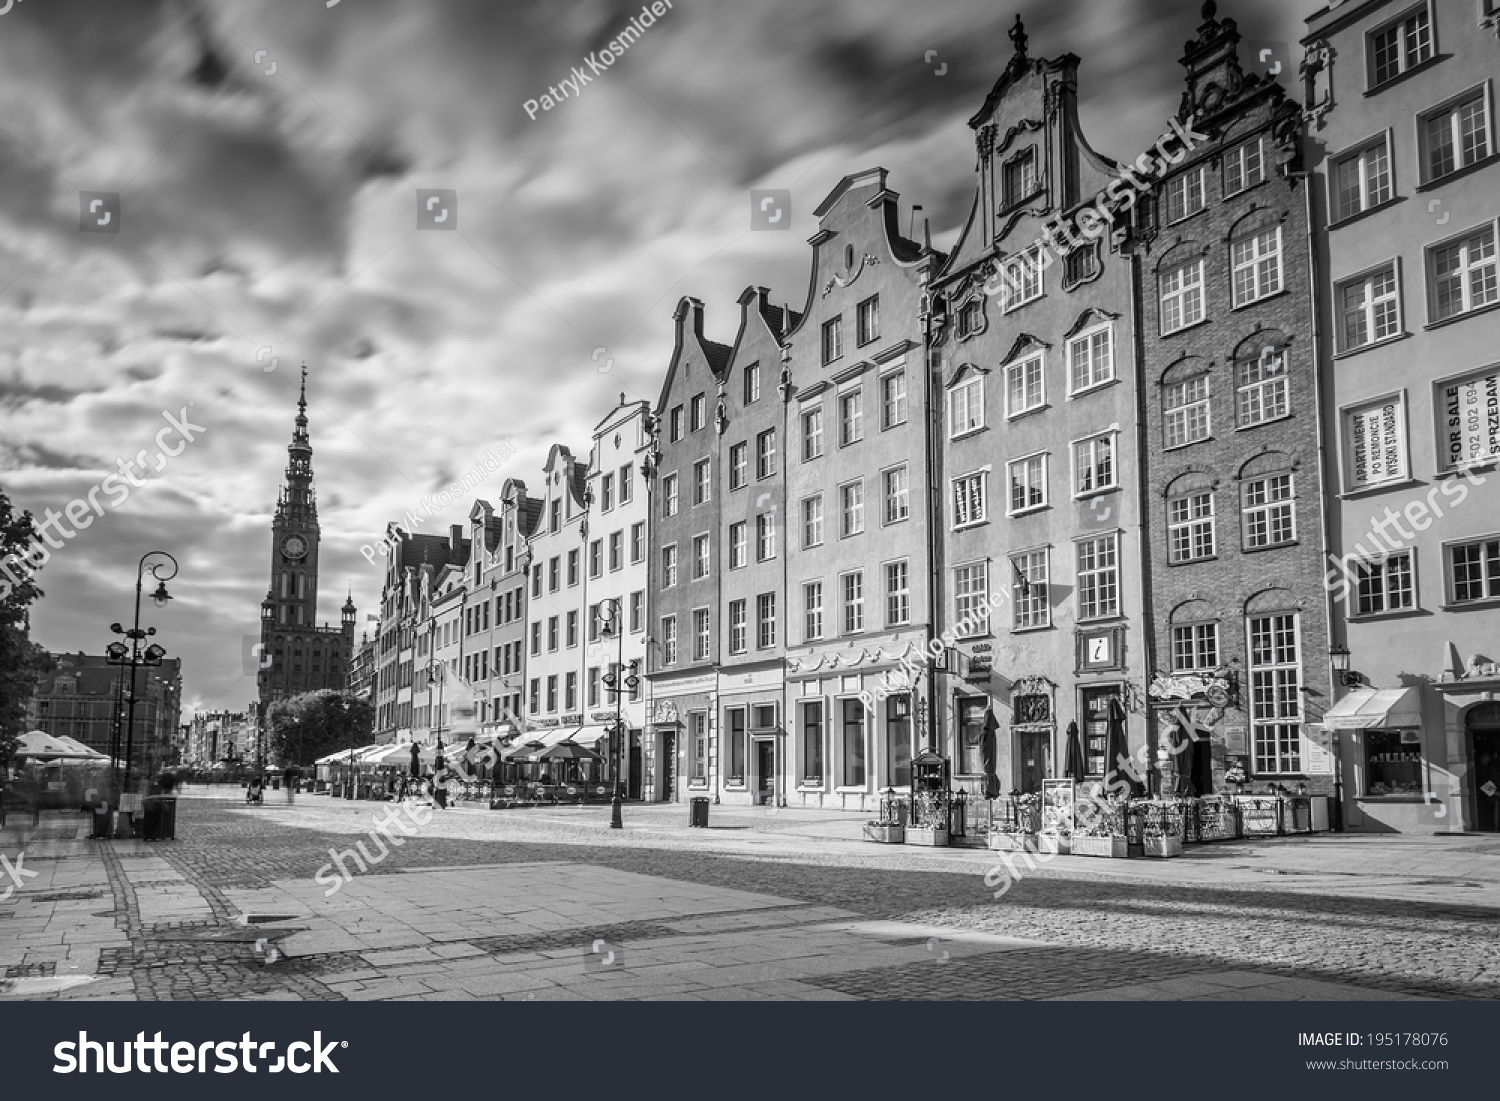 Gdansk poland 13 may the long lane street in black and white